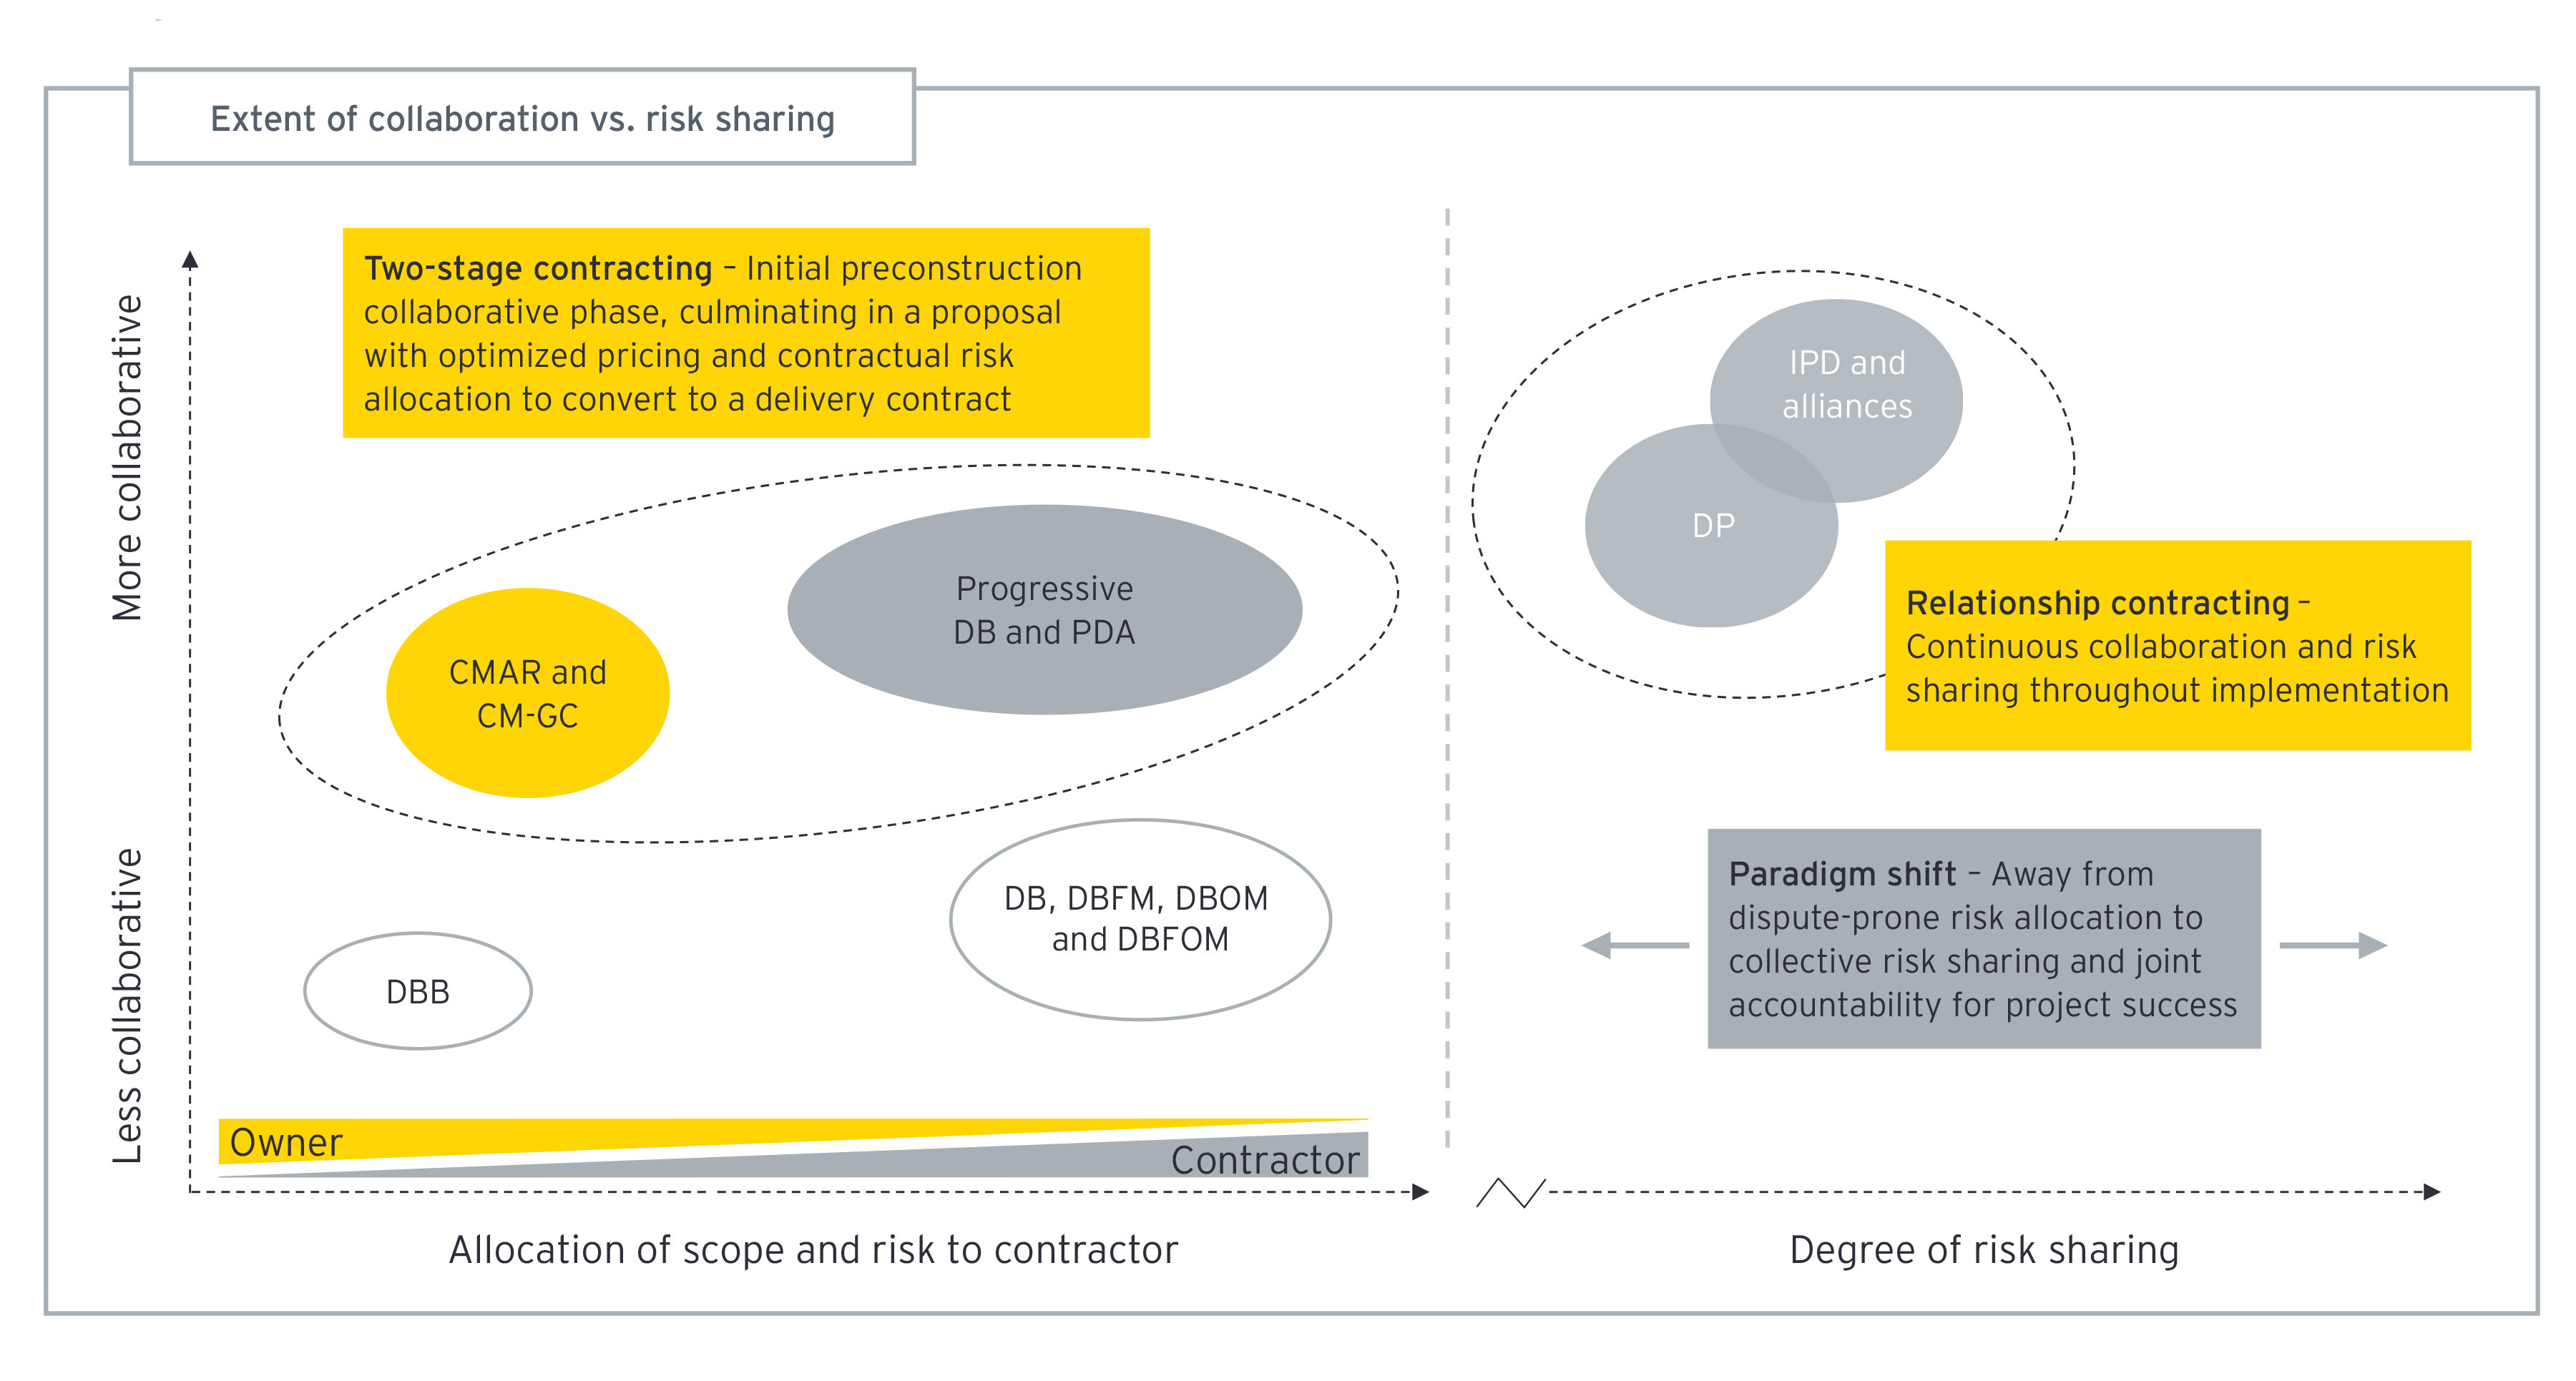 Chart of risk sharing and allocation under collaborative